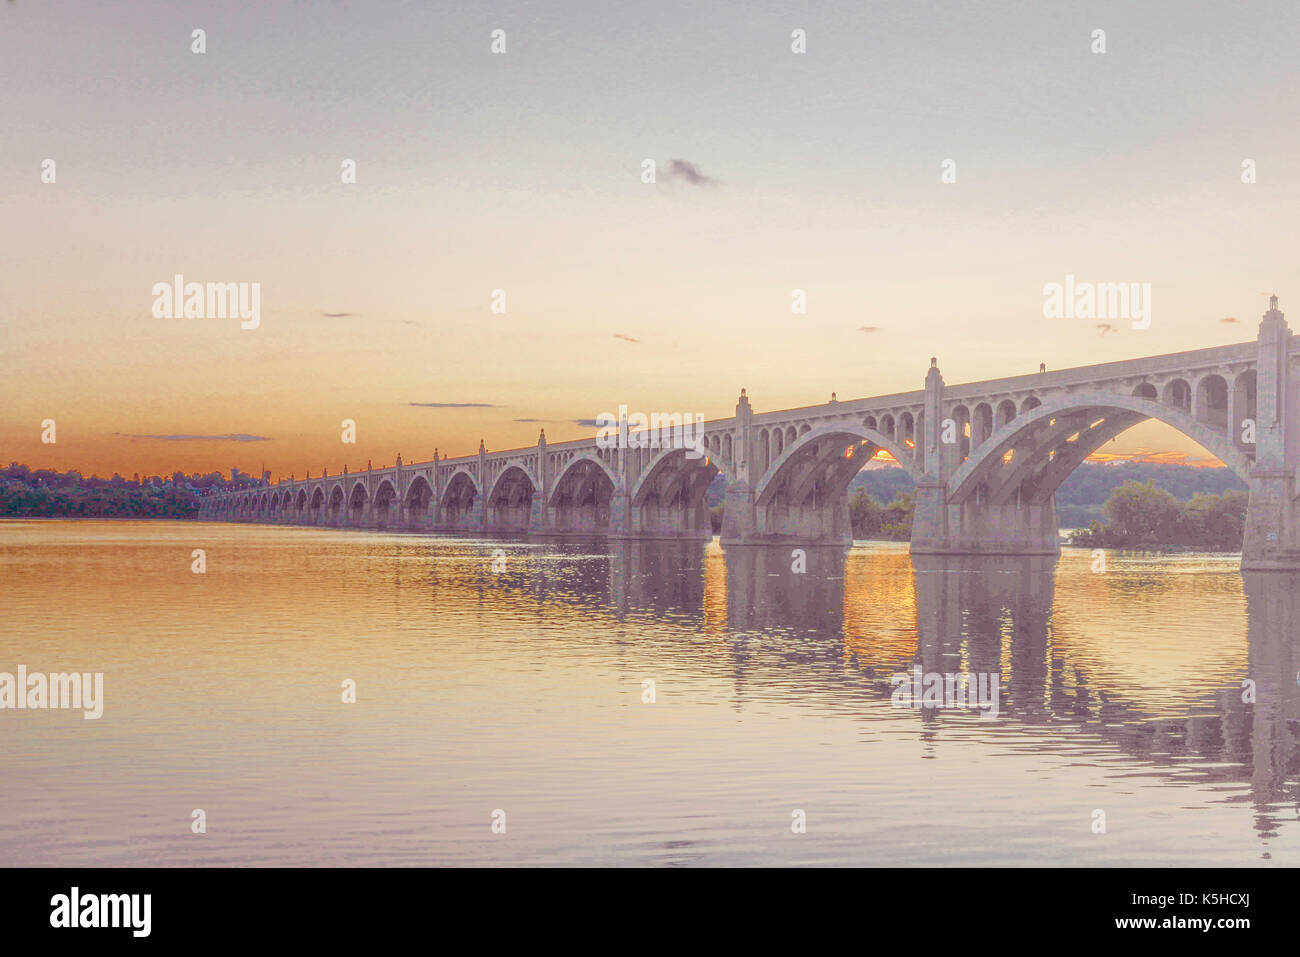 Veterans Memorial Bridge spanning the Susquehanna River between Wrightsville PA and Columbia PA - Stock Image